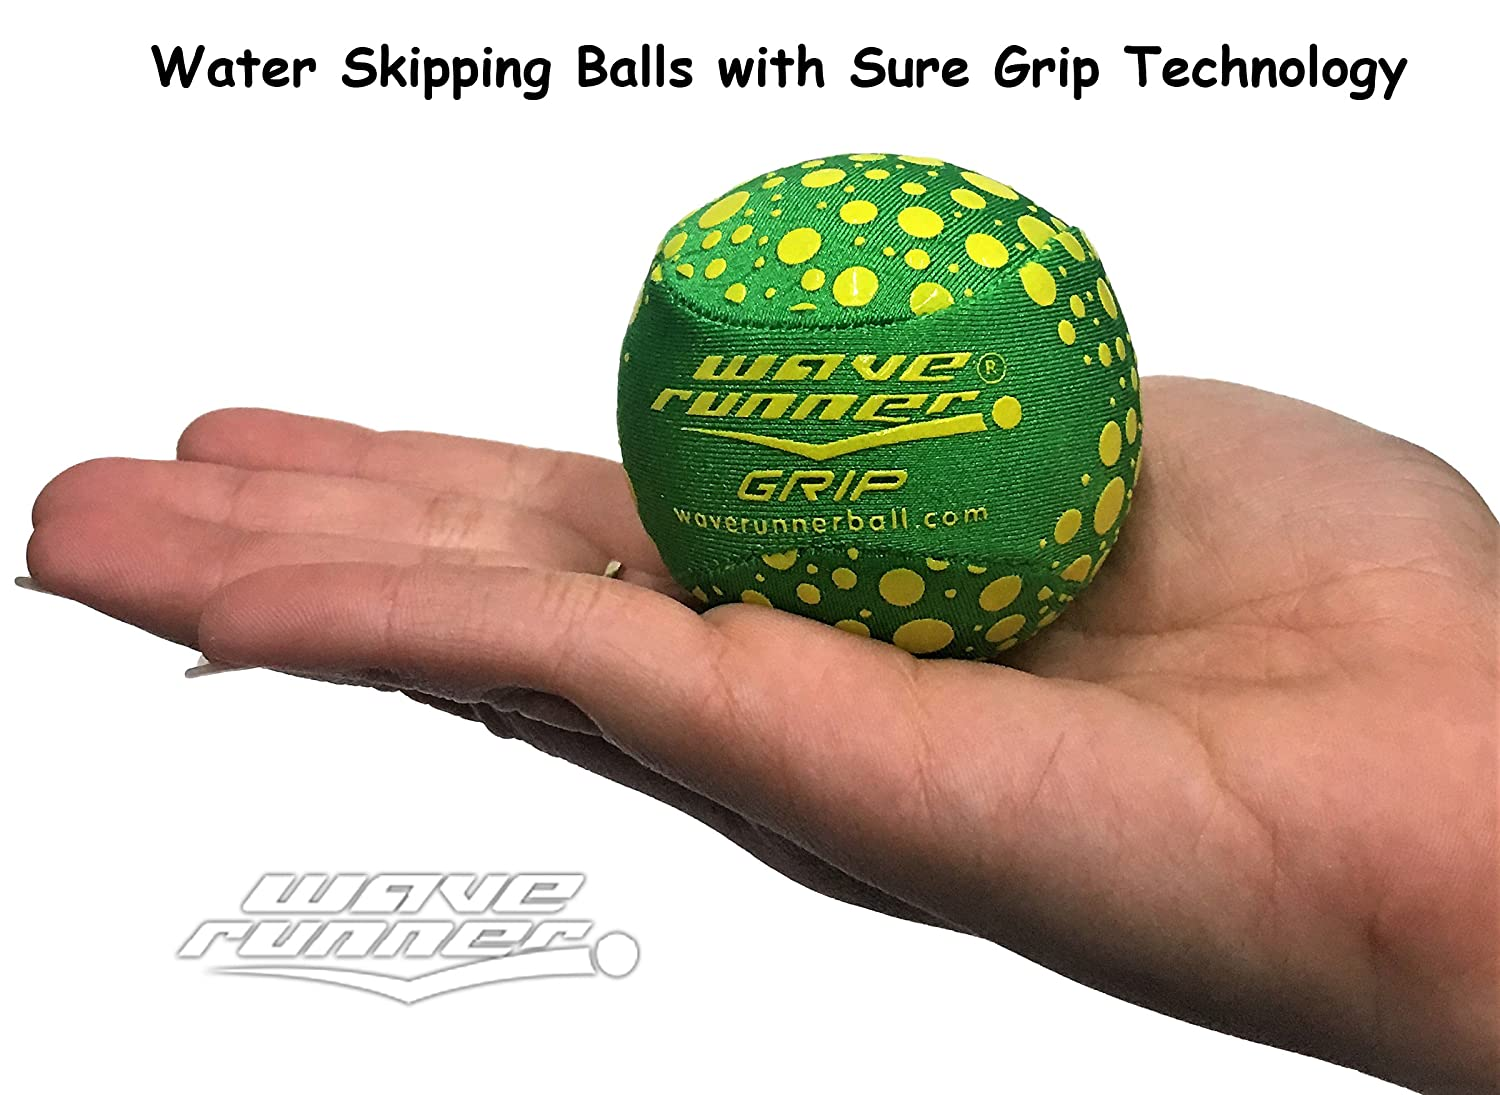 Wave Runner Water Runner Grip Ball Water Skipping Ball with Sure Grip Technology Great for Kids Boys Girls Ball Bounces On Water Small Size Water Toys Green ...